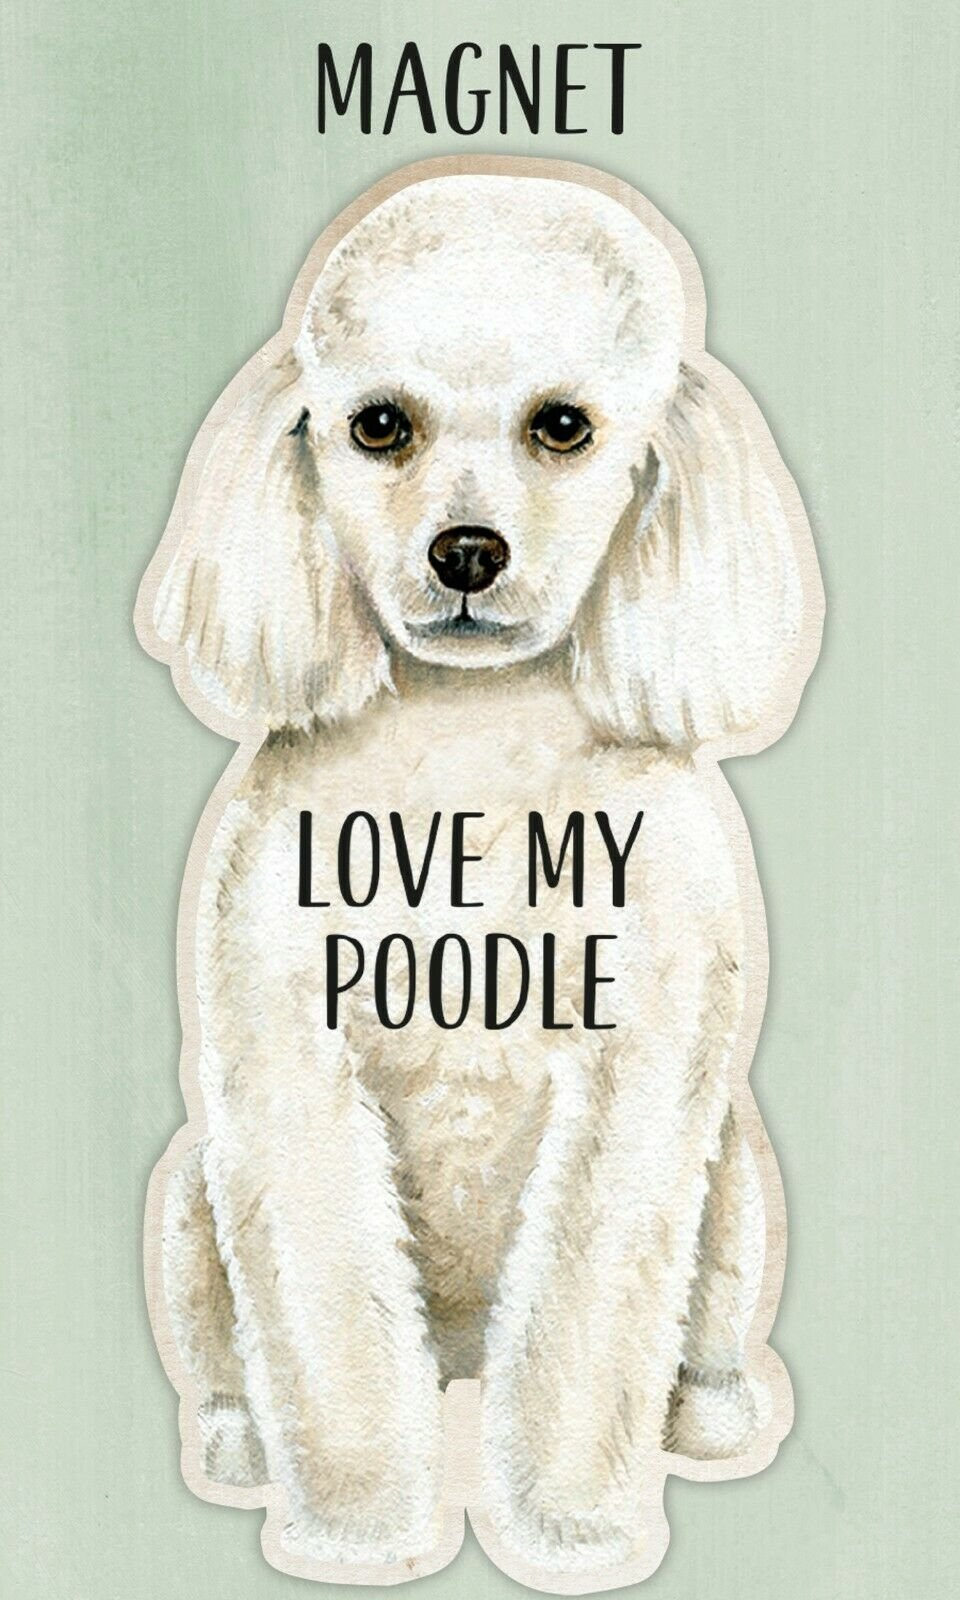 Love my Love my Poodle Dog Shaped Magnet by Primitives By Kathy - Piglet's Closet